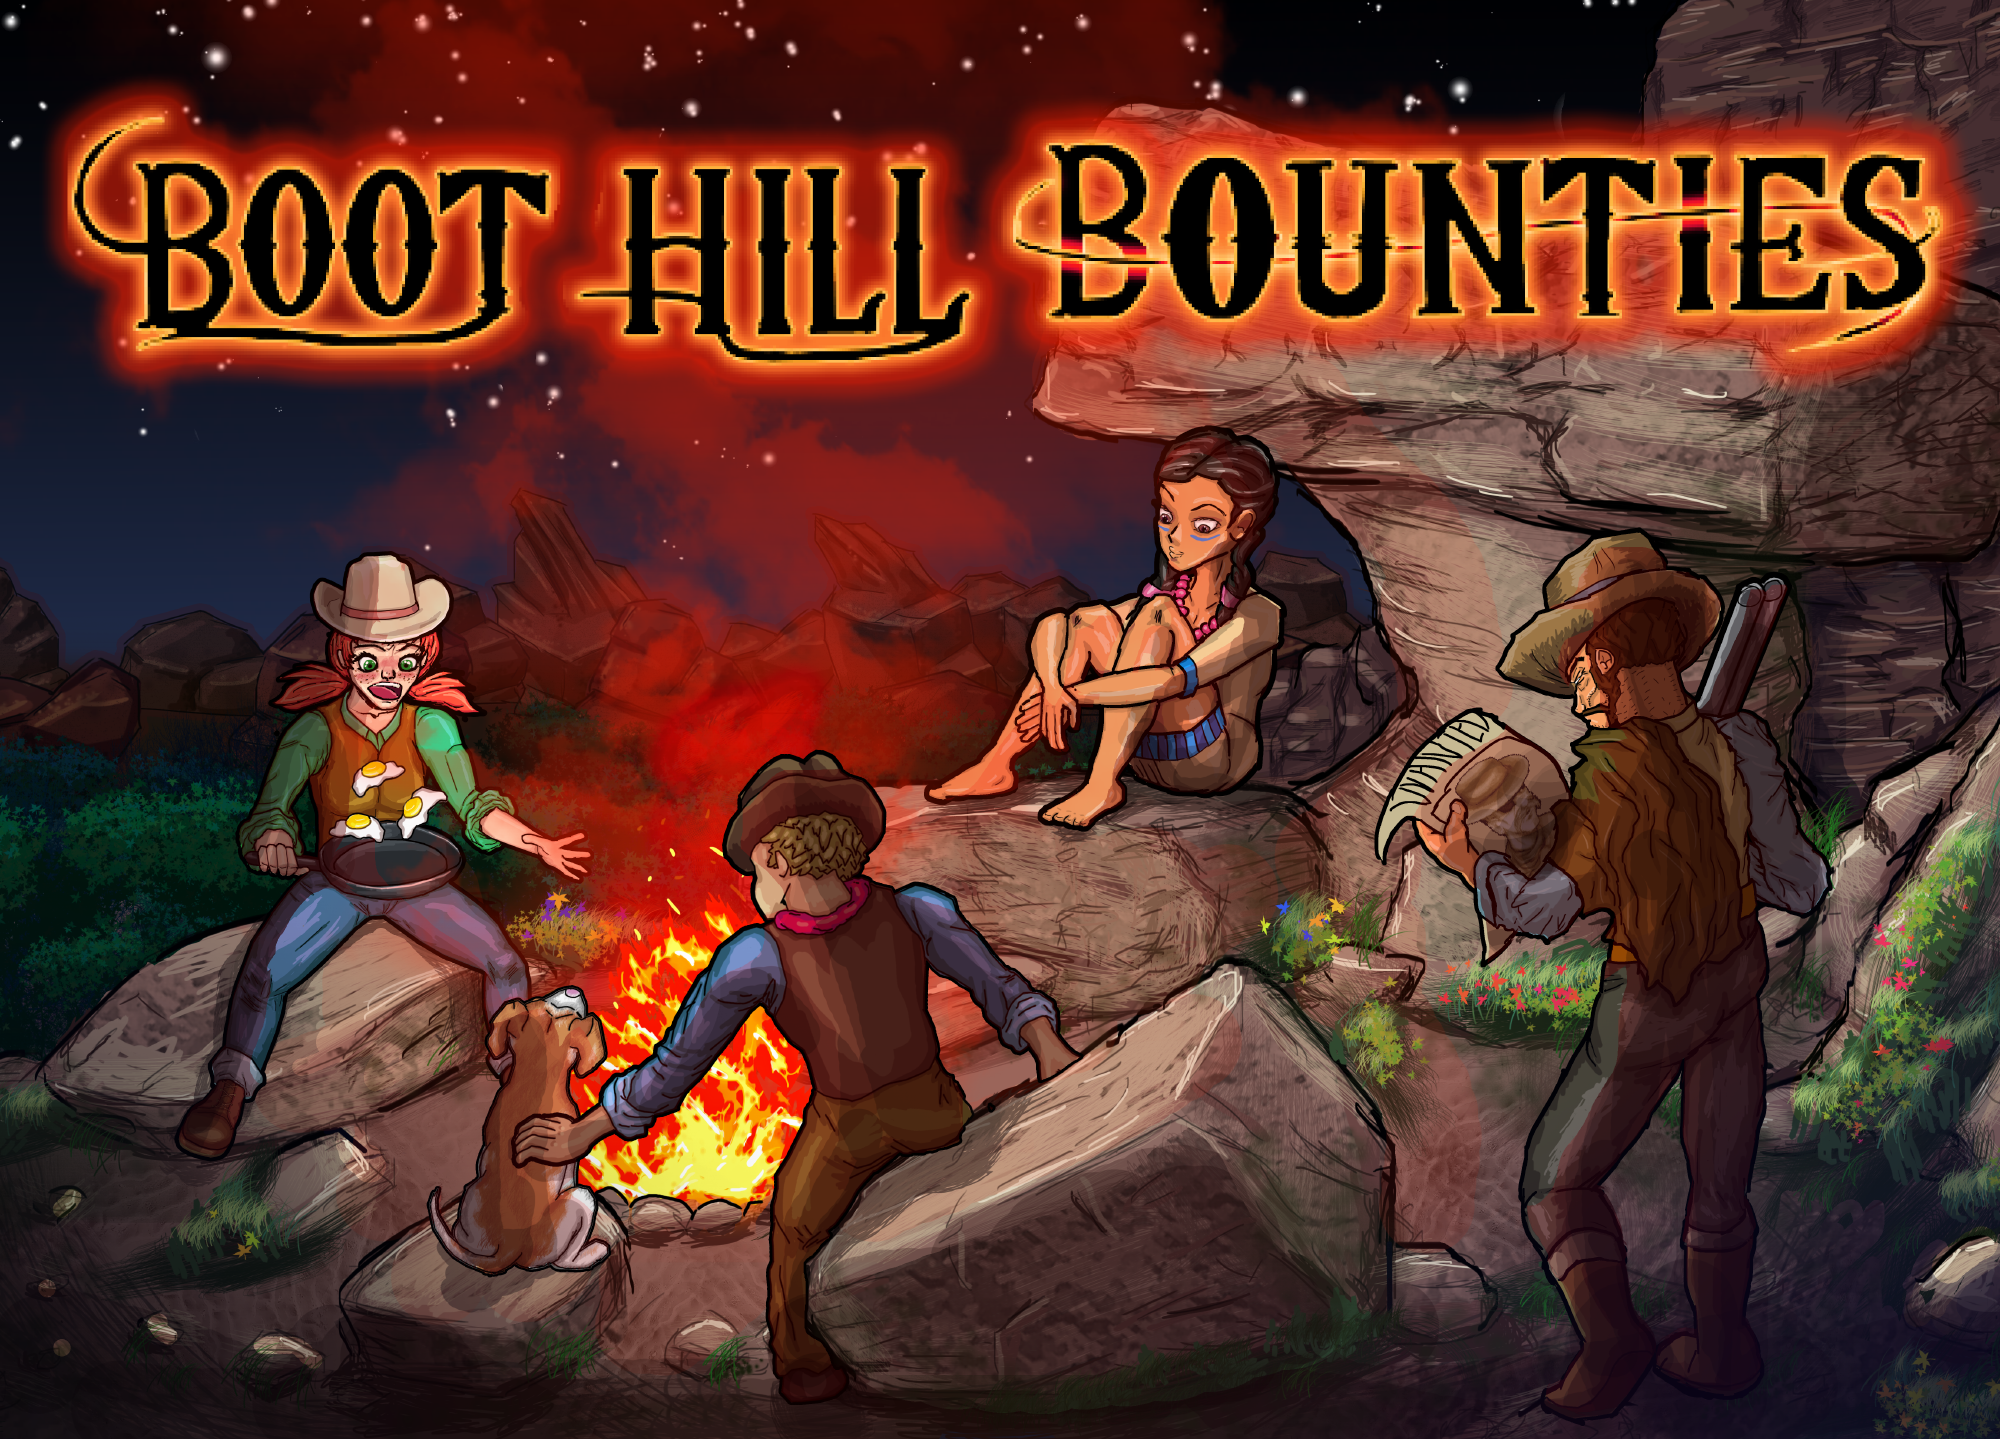 boothillbountiesboxartlarge Announcing Boot Hill Bounties! Coming to Steam December 1